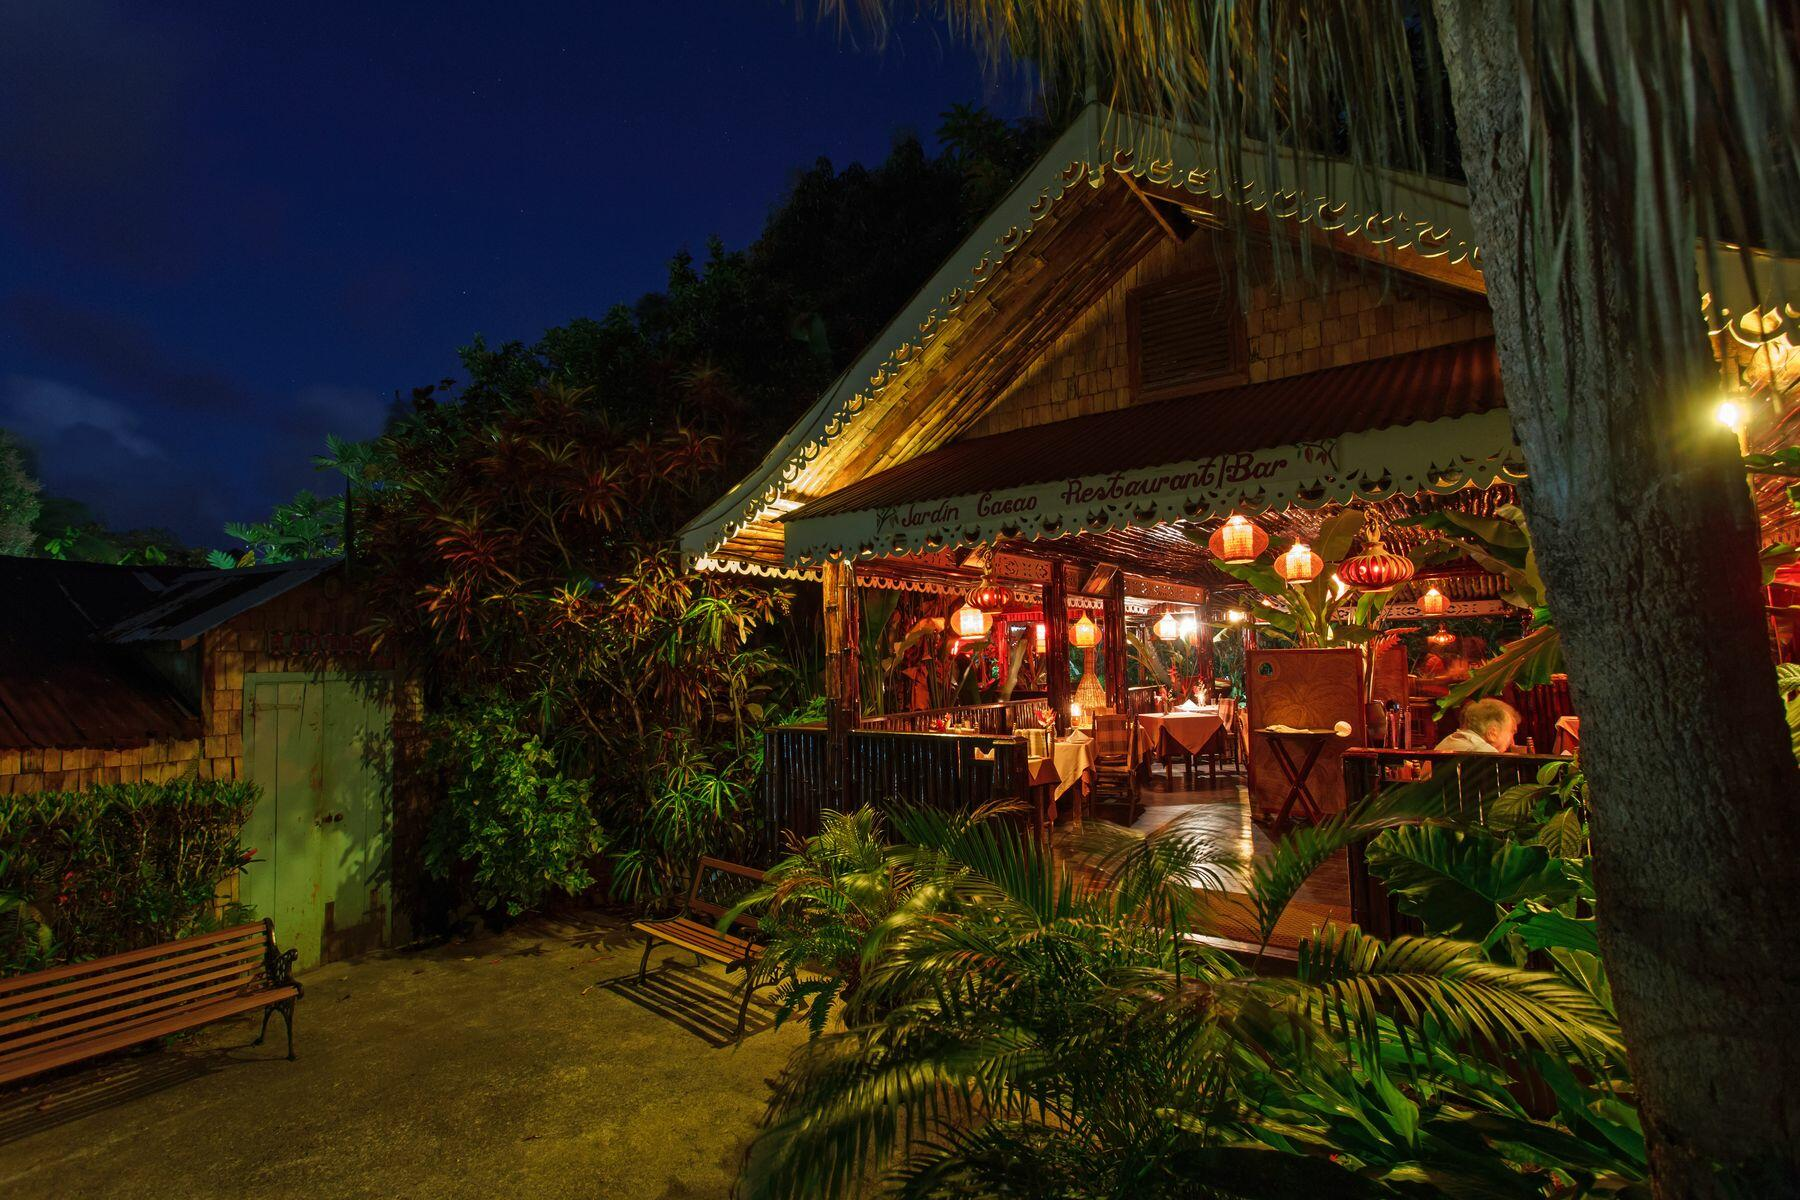 hut in tropical setting at night